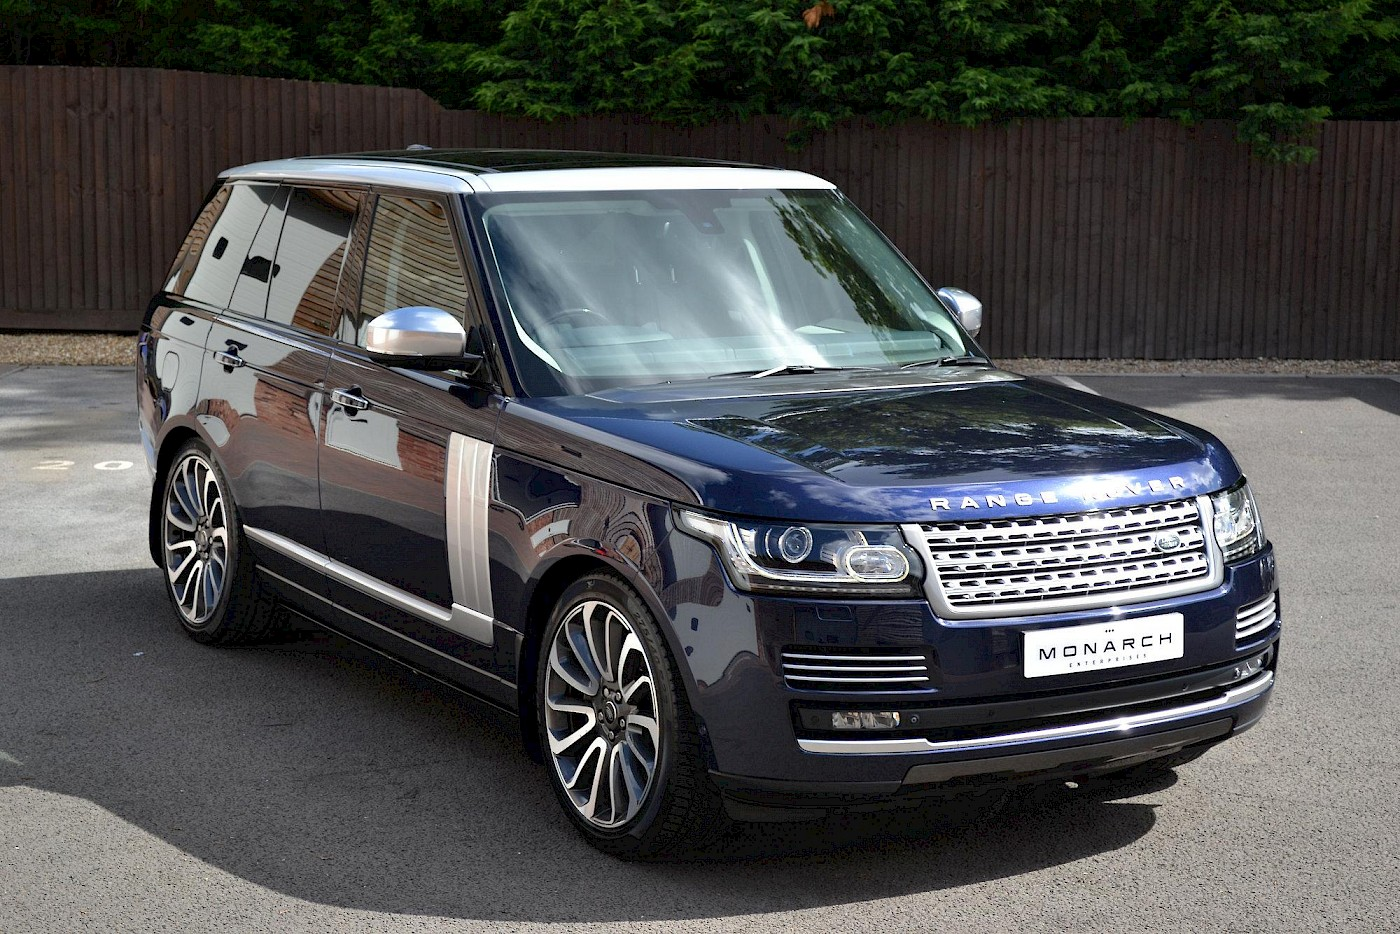 2013 63 land rover range rover 4 4 autobiography cars. Black Bedroom Furniture Sets. Home Design Ideas